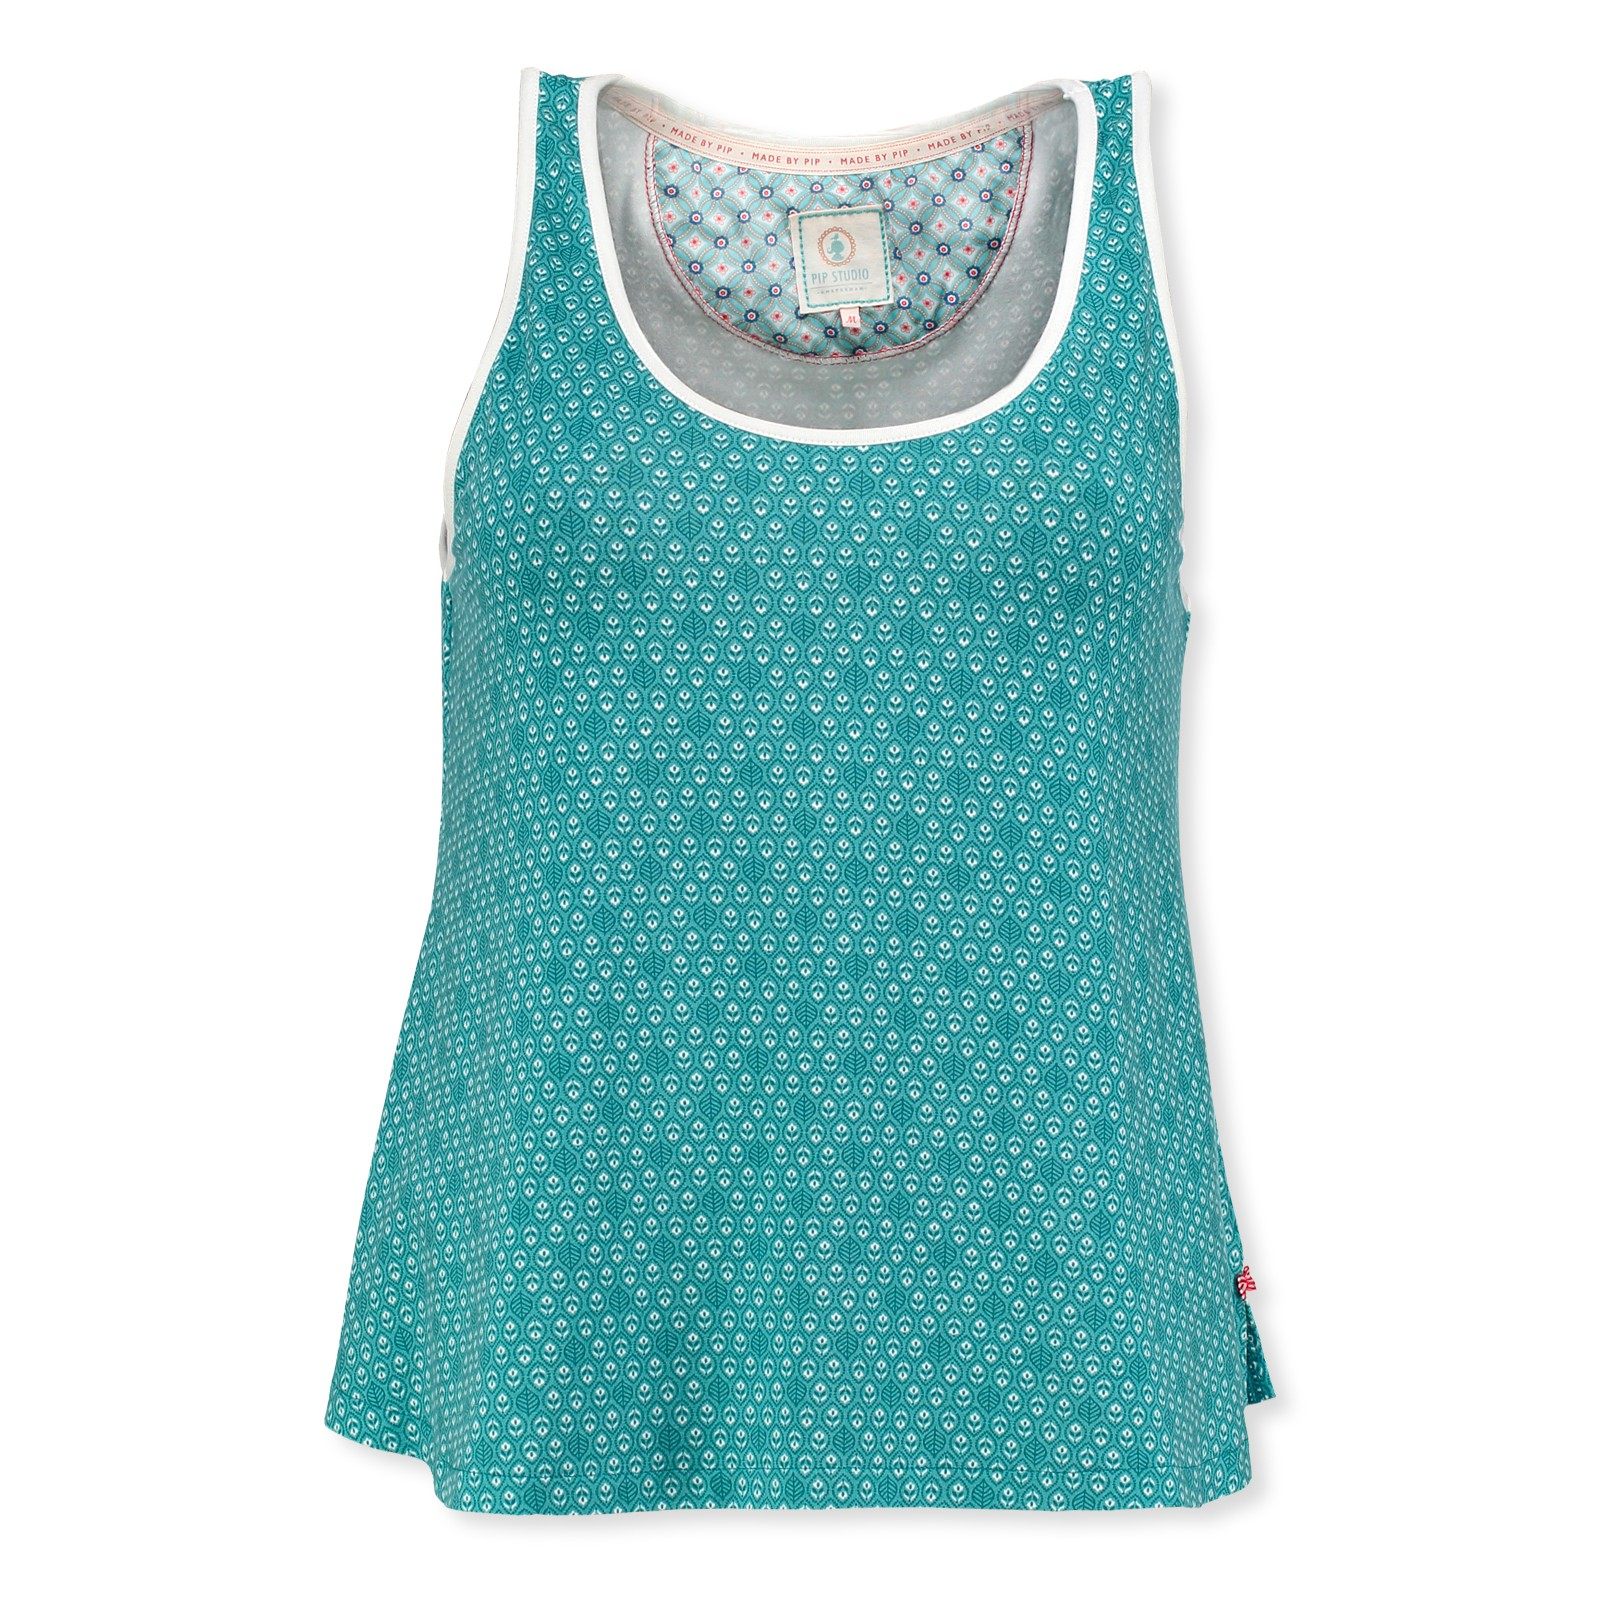 PiP Studio Damen Top sleeveless Pyjama Oberteil Tanktop Teun Leaves S M L XL 260544 in aqua